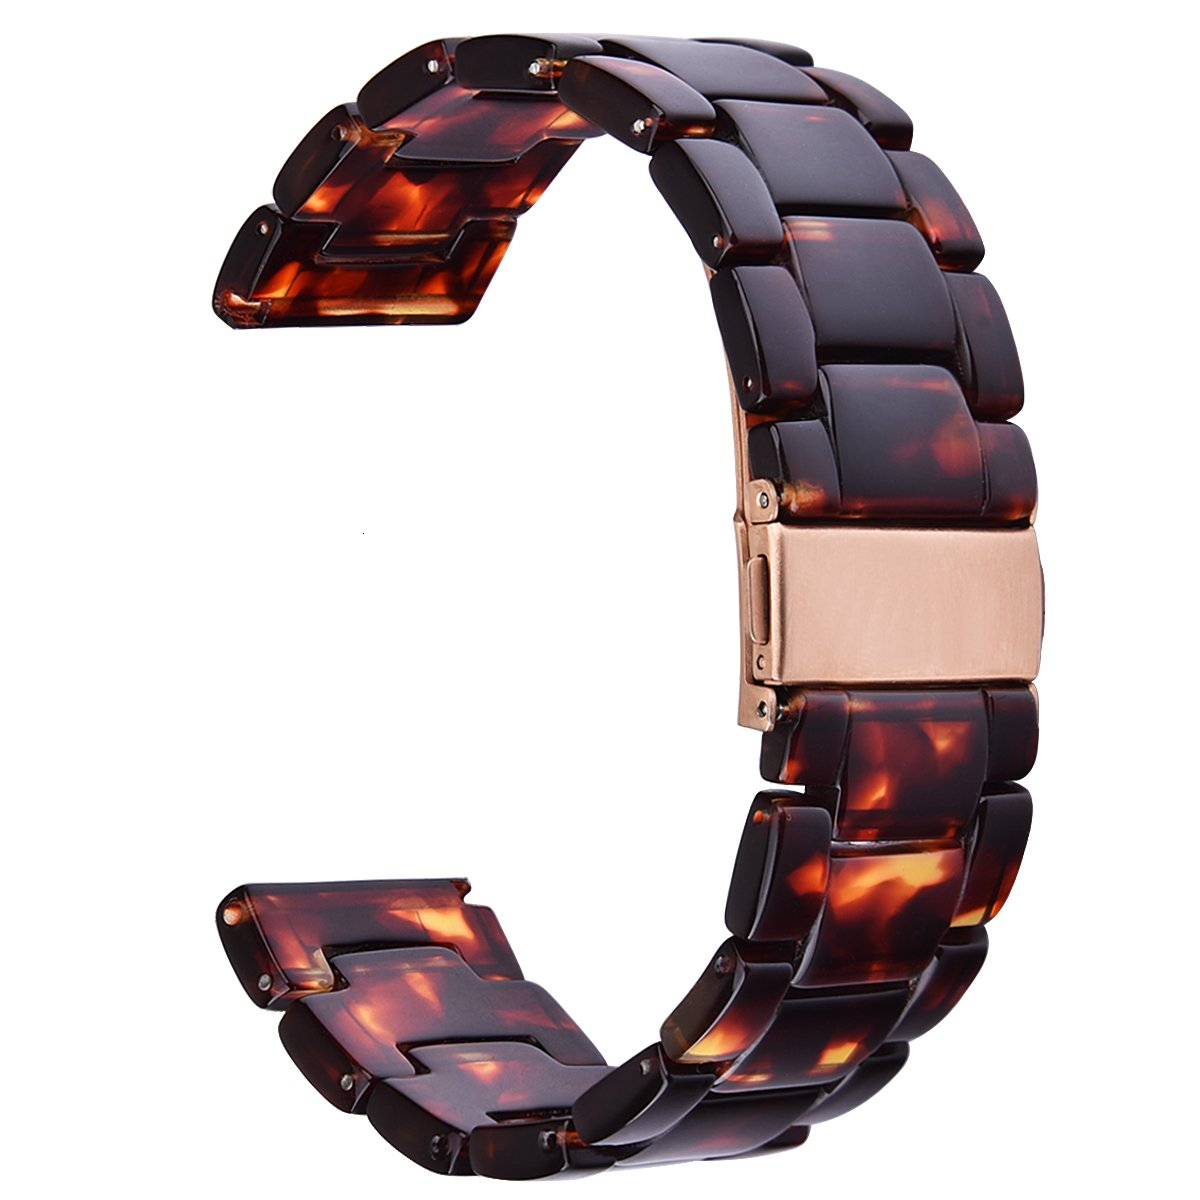 Resin <font><b>Bracelet</b></font> Replacement Strap Link 22mm band for <font><b>Samsung</b></font> Galaxy <font><b>Watch</b></font> <font><b>46mm</b></font> Active Gear S3 Classic Amazfit 2S HUAWEI <font><b>watch</b></font> GT image